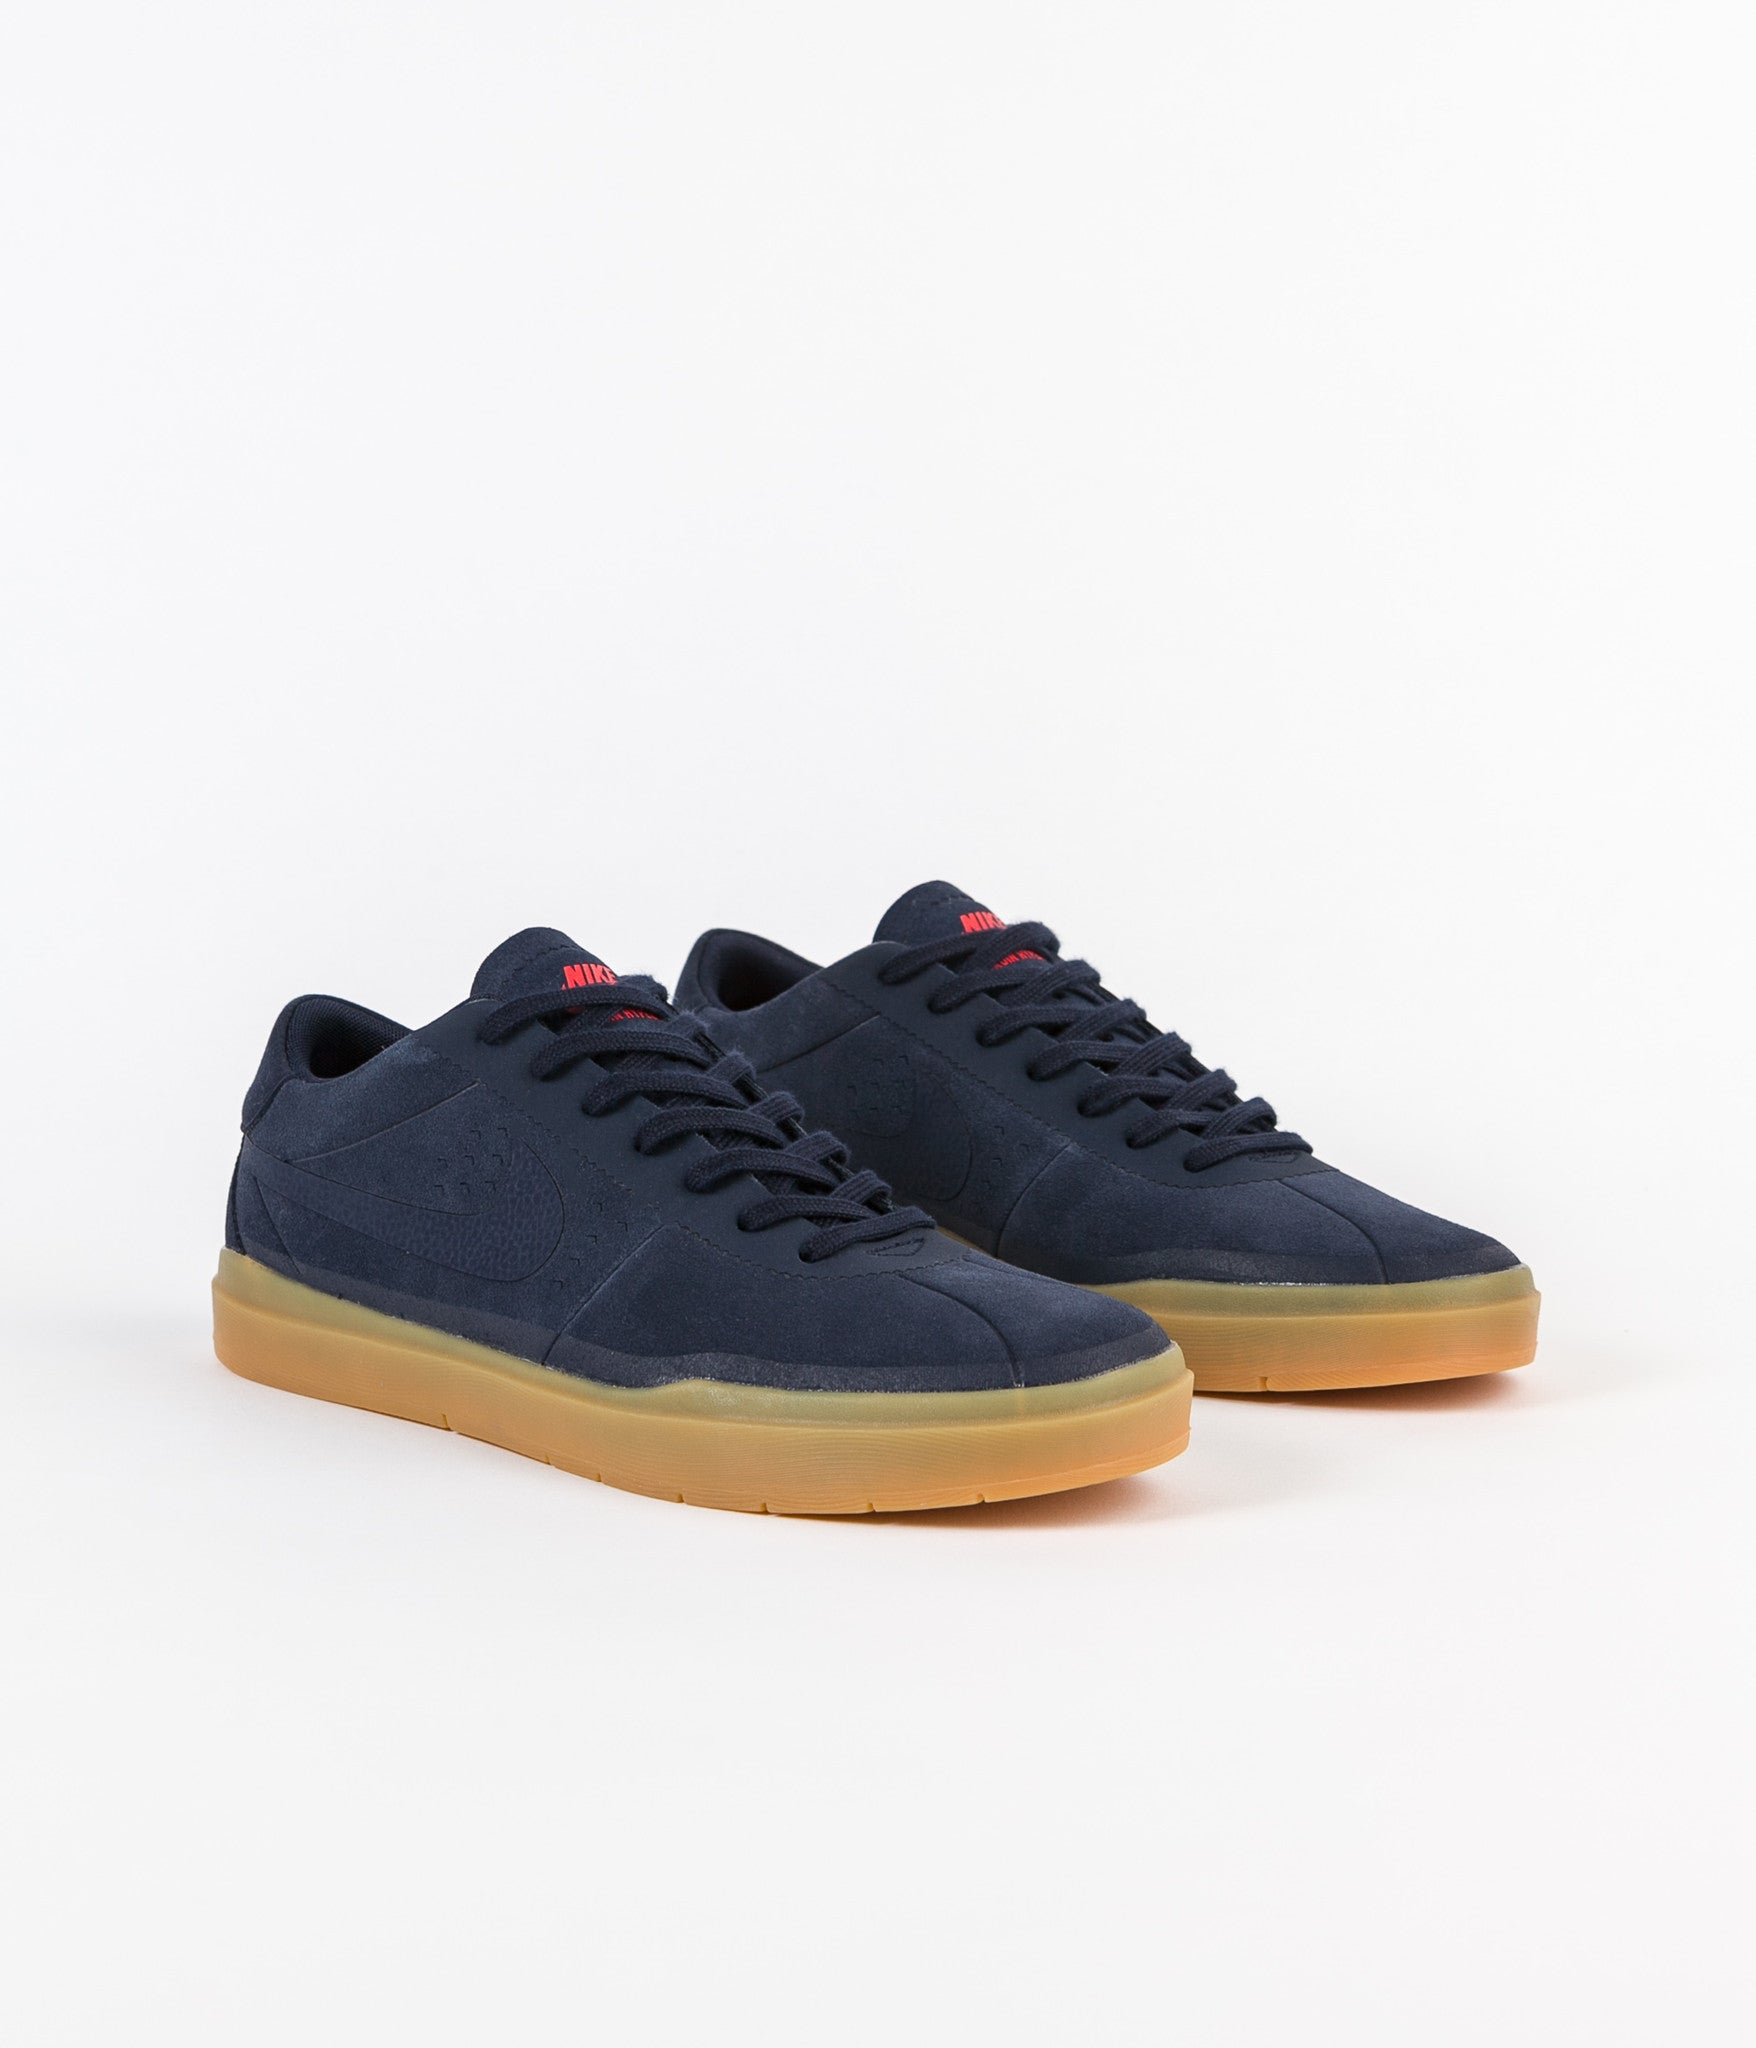 Nike SB Bruin Hyperfeel Shoes - Obsidian / Obsidian - Gum Light Brown